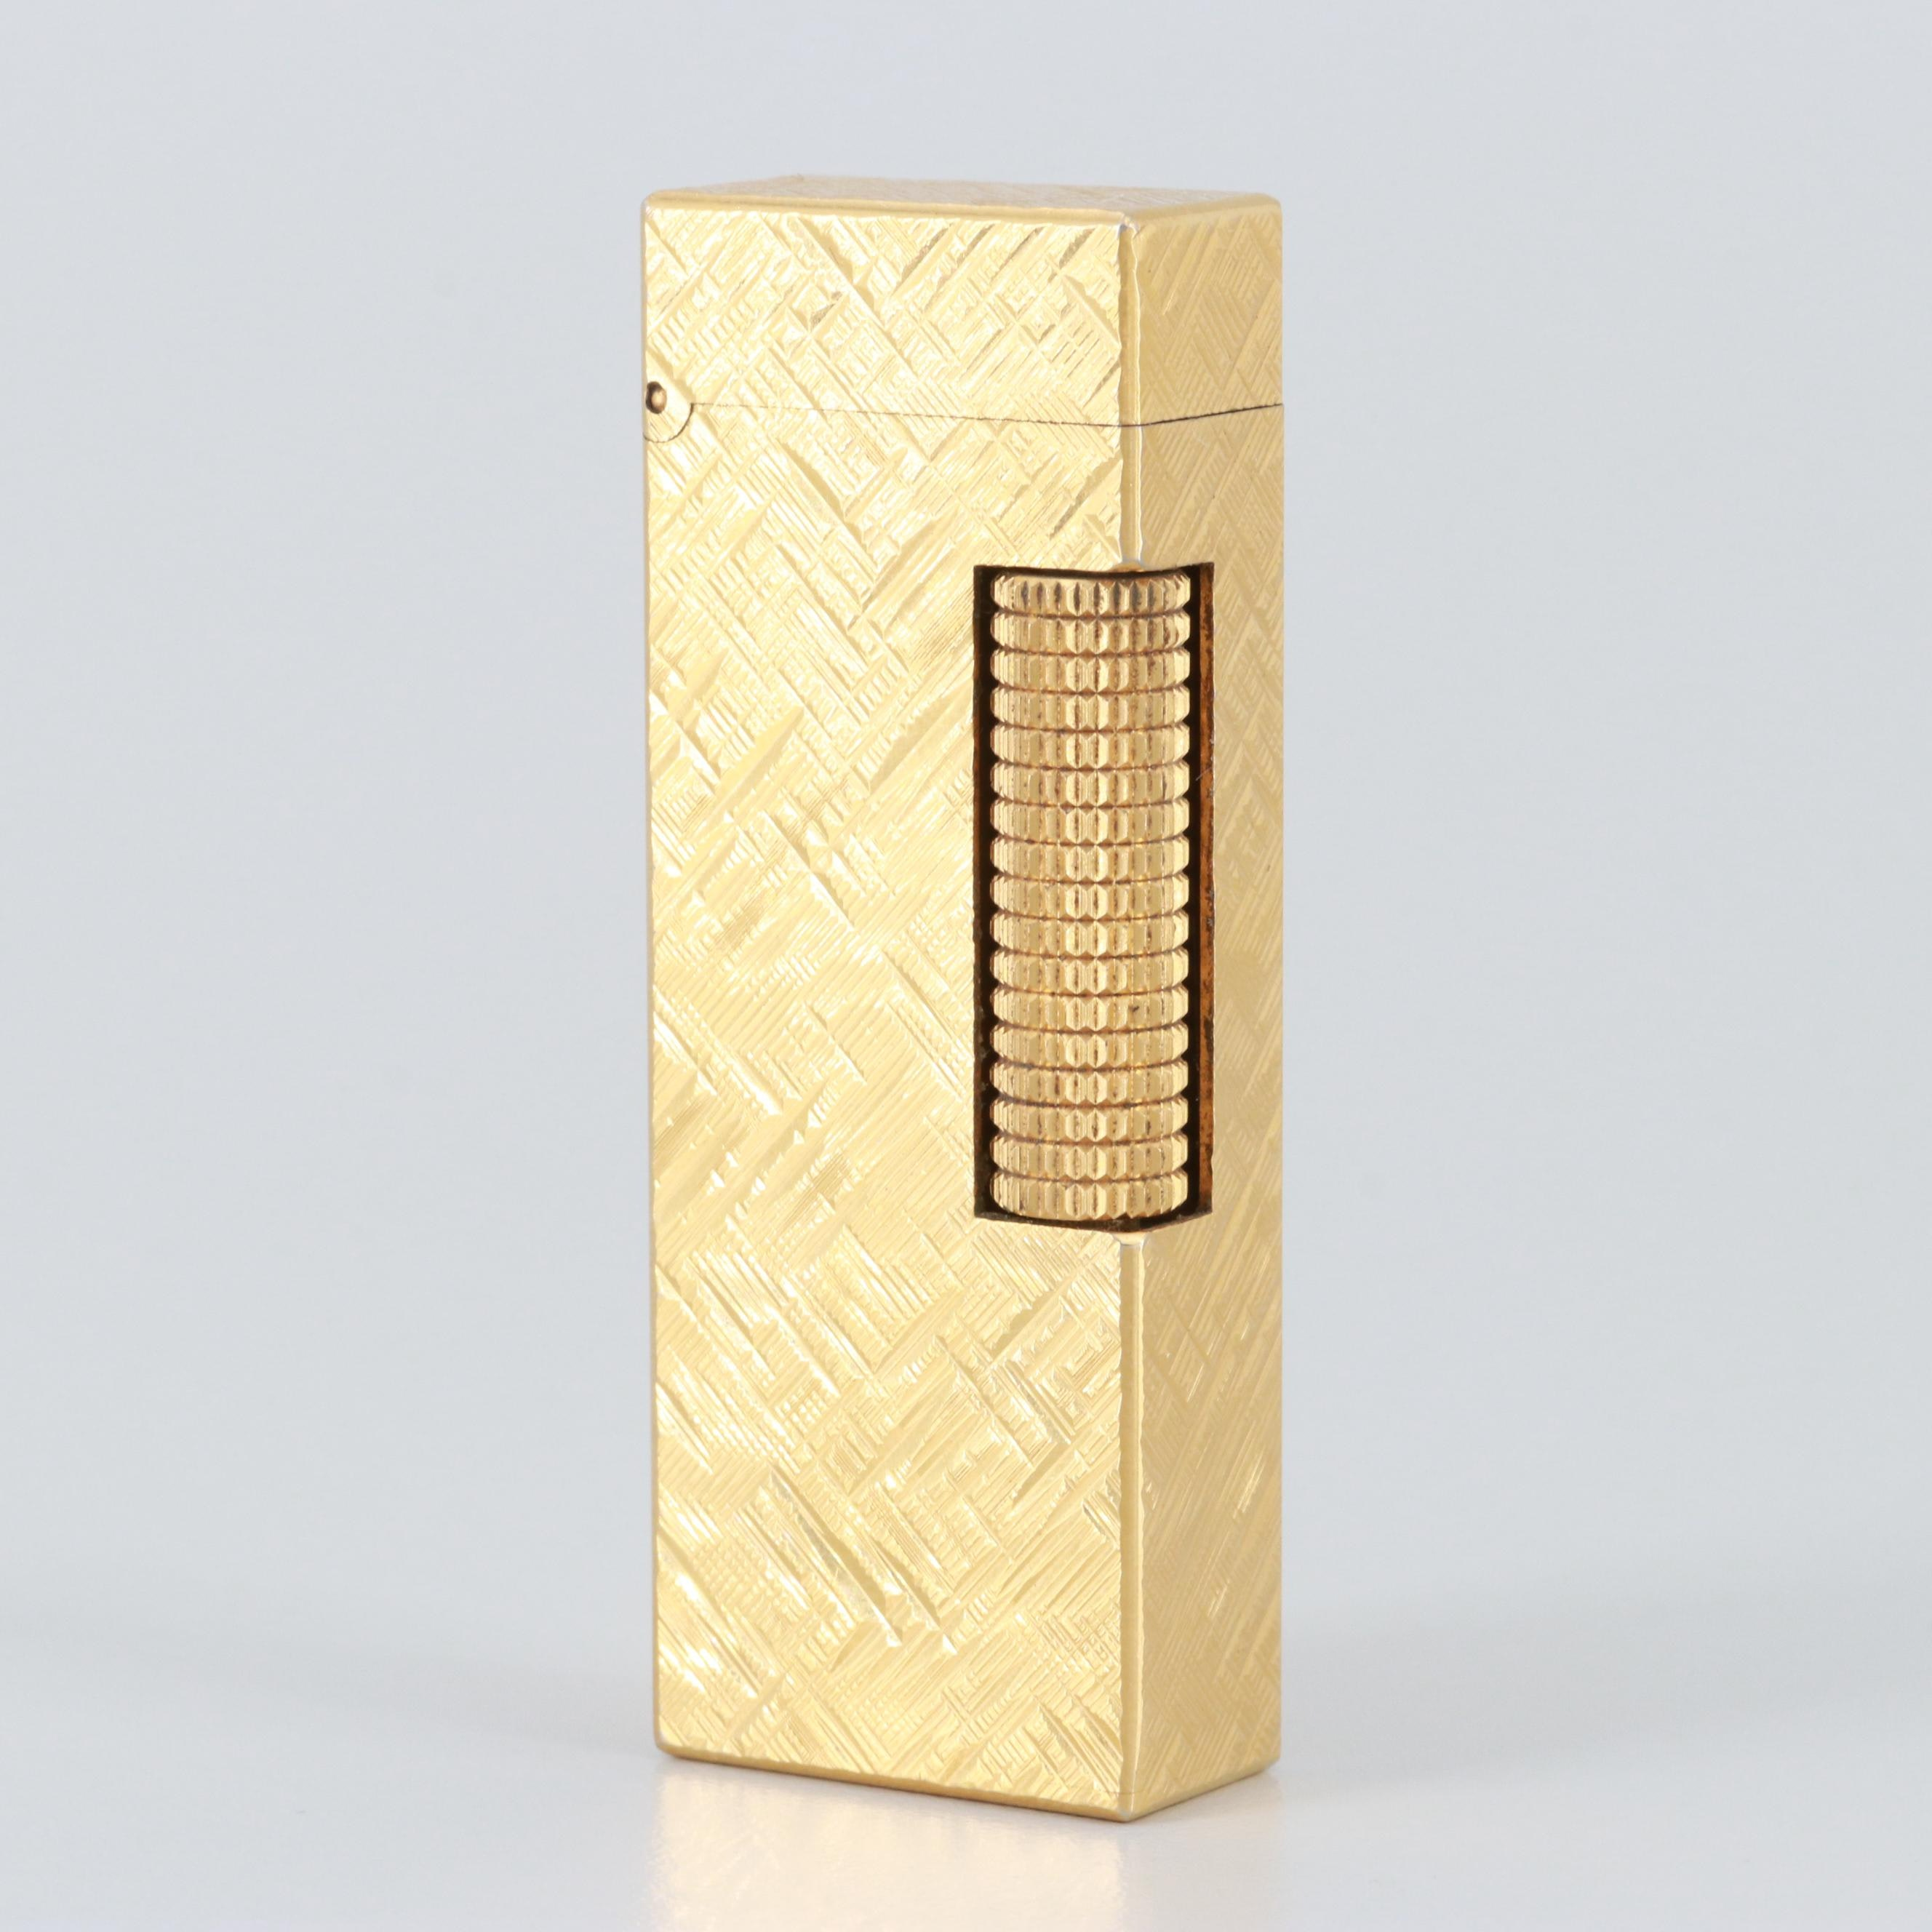 Swiss Made Dunhill Gold Tone Lighter